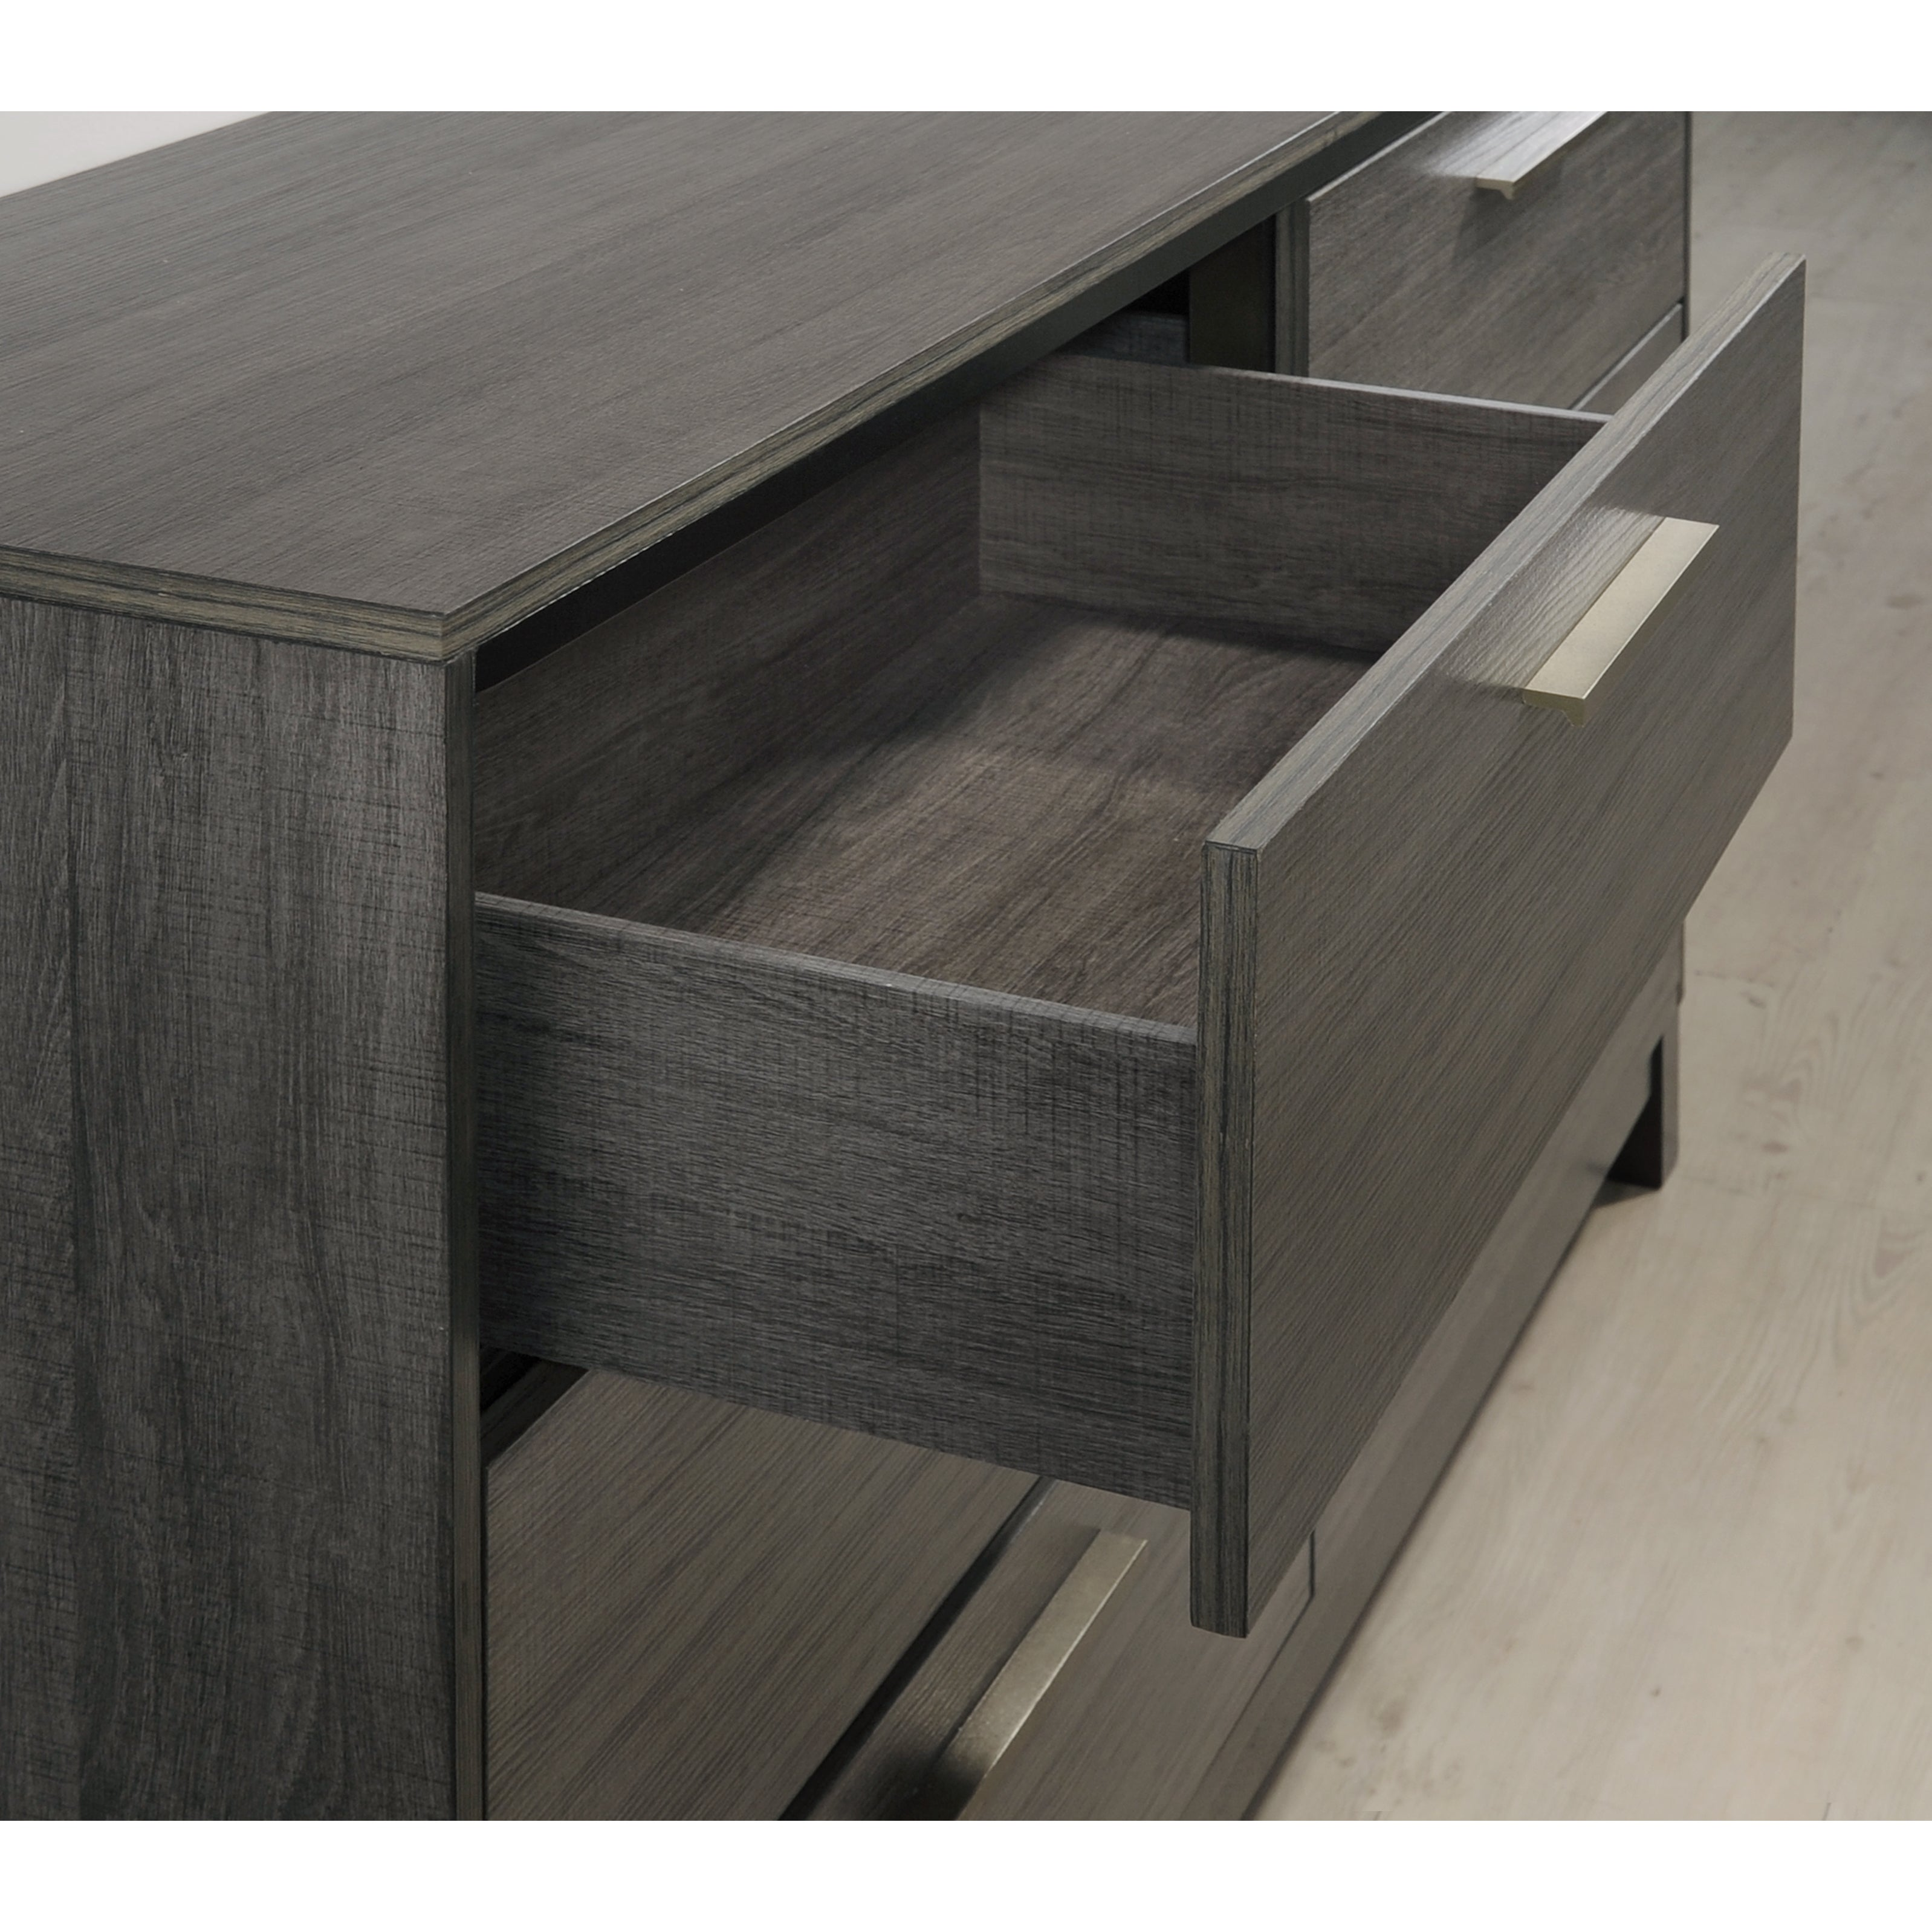 Shop ioana 187 antique grey finish wood bed room set king size bed dresser mirror 2 night stands chest free shipping today overstock com 14988618